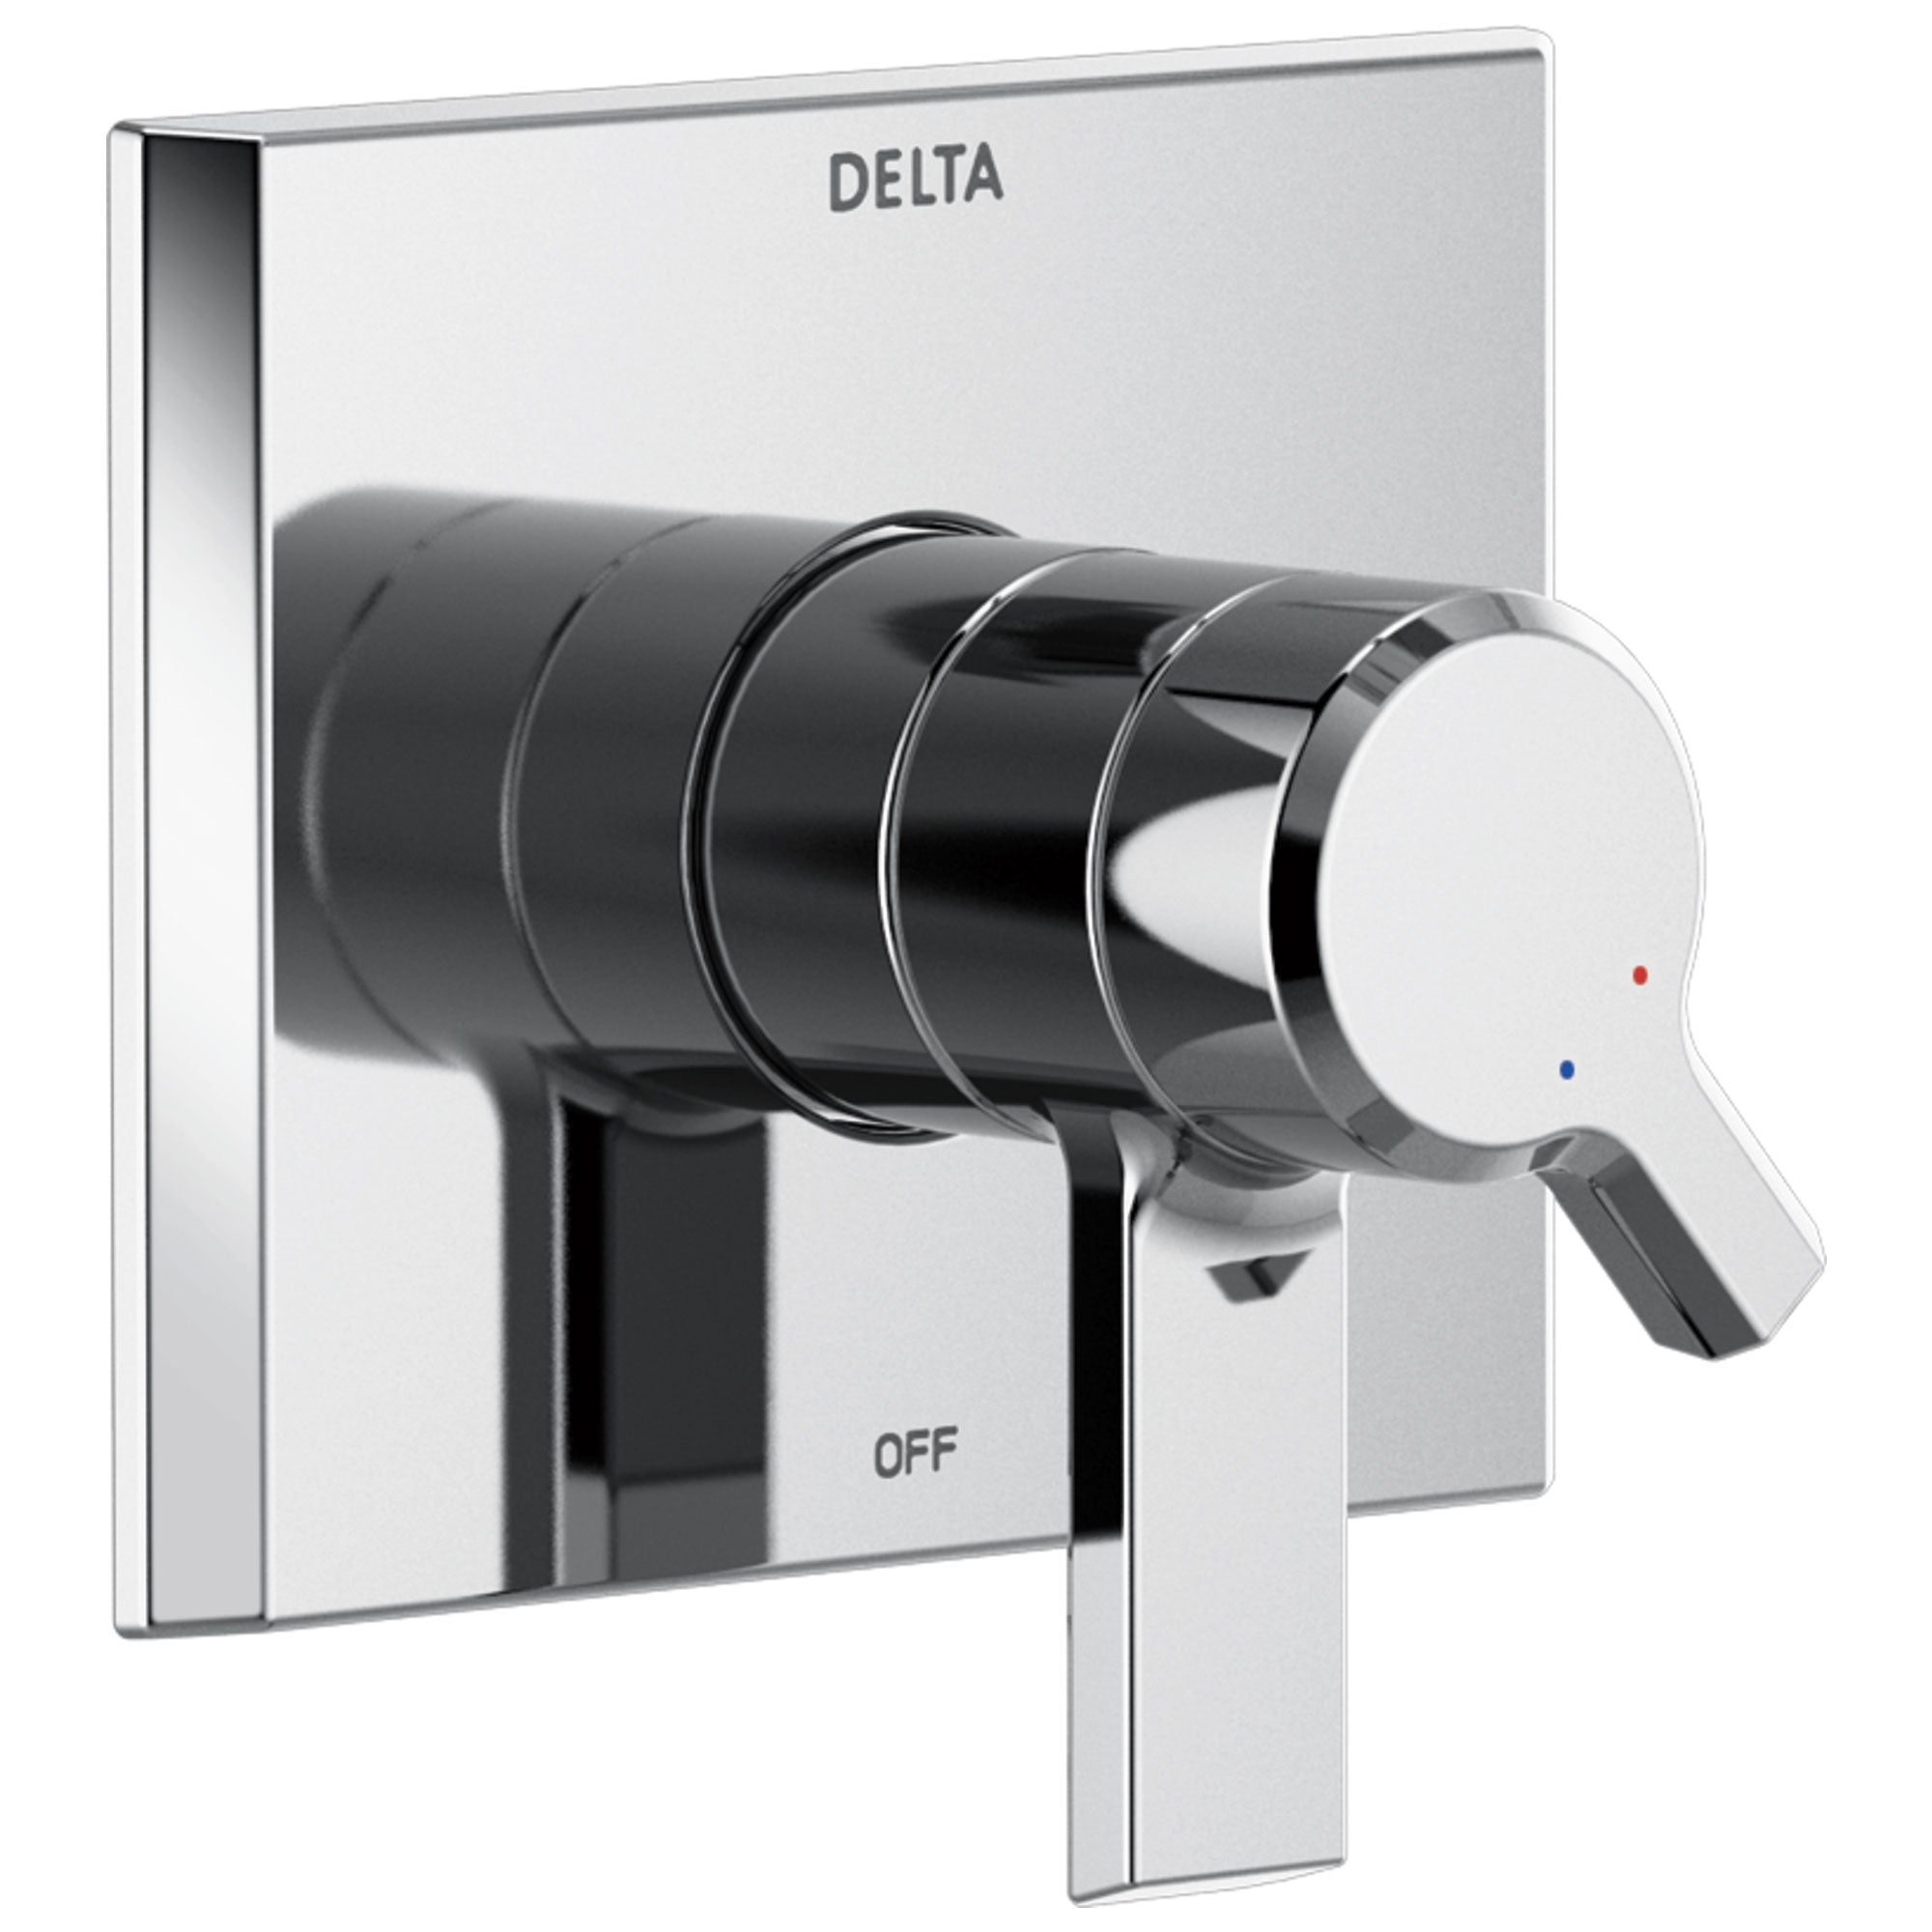 Delta Pivotal Modern Chrome Finish Monitor 17 Series Shower Faucet Control Includes Handles, Cartridge, and Valve with Stops D3398V